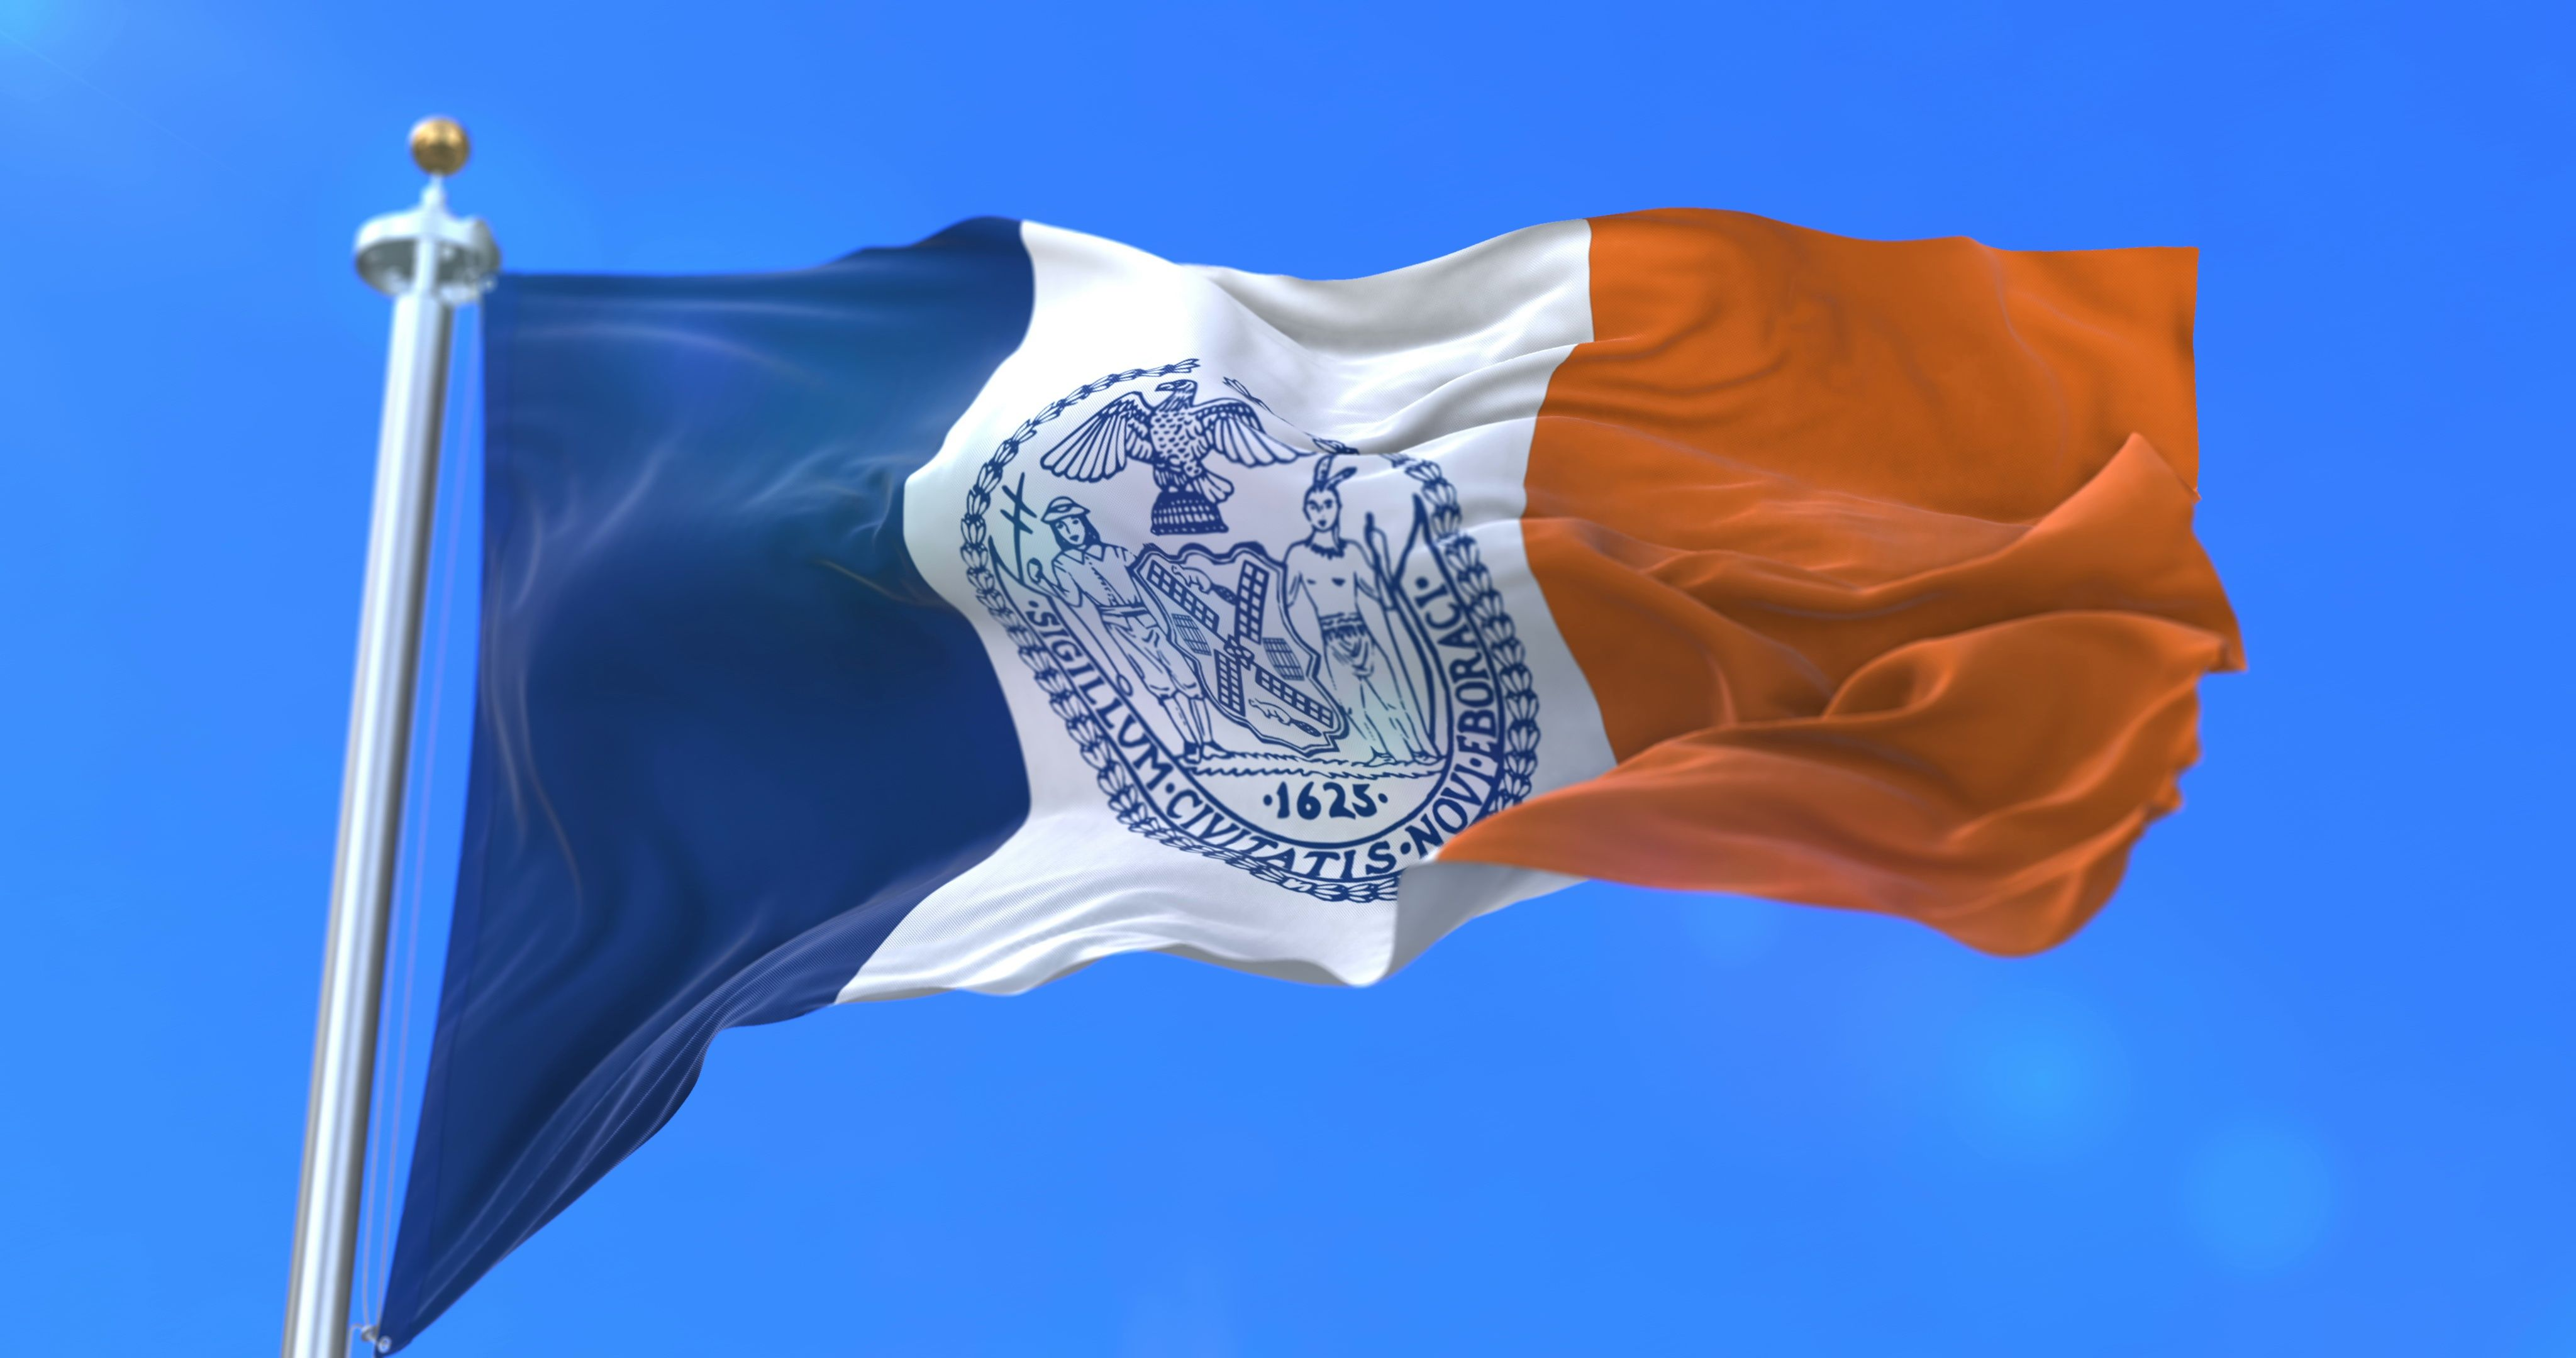 Flag Of New York City City Of United States Of America Loop Stock Footage City United Flag York New York City States In America The Unit